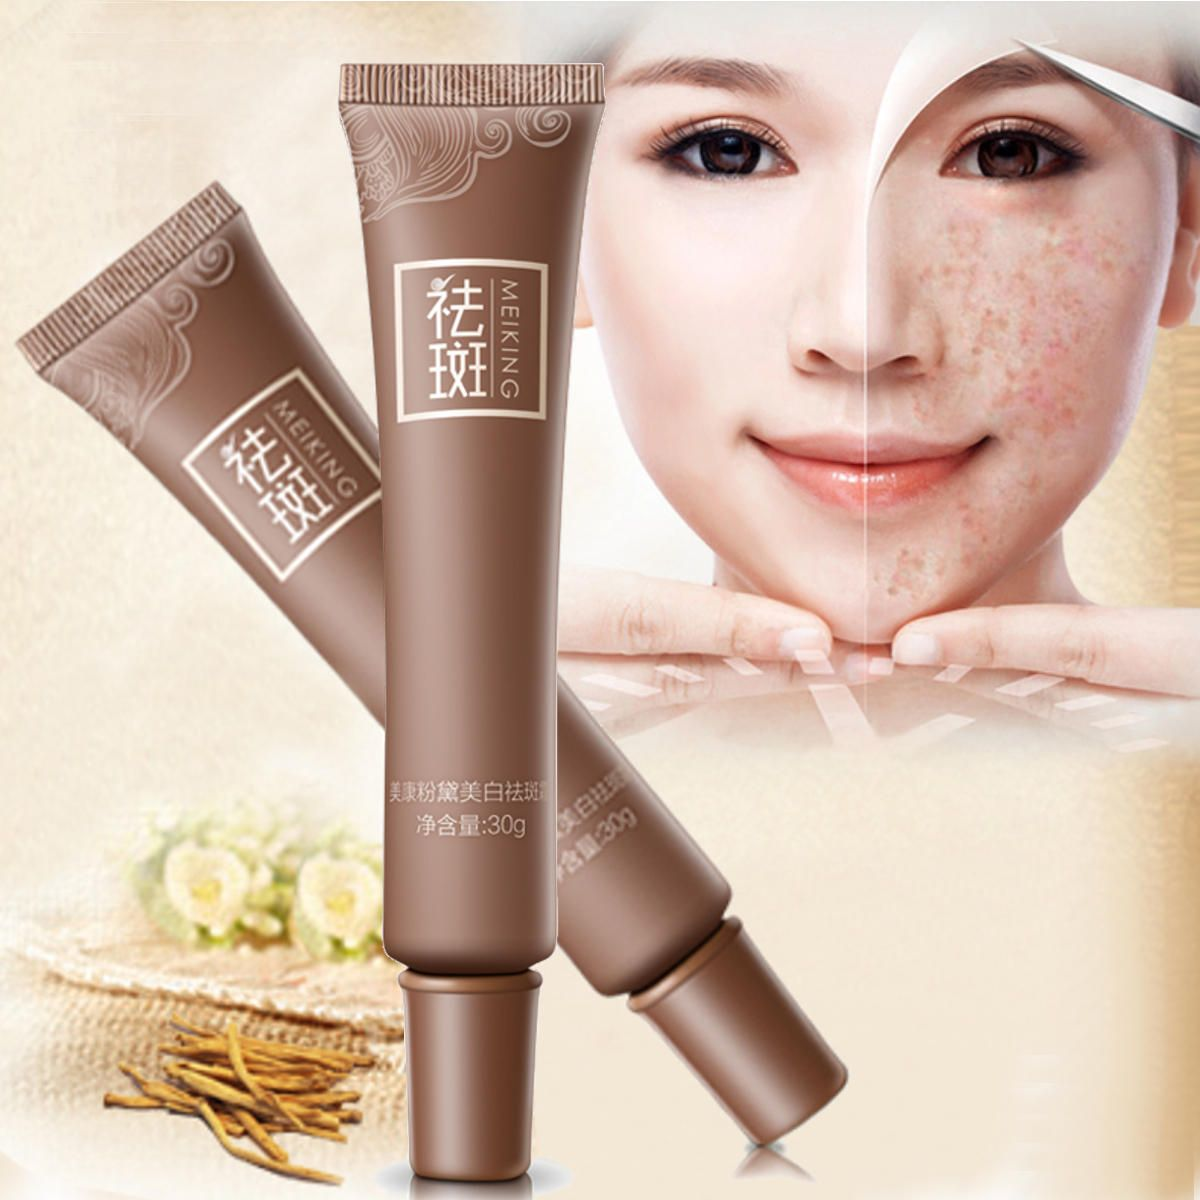 Age spot melasma remove freckle face cream whitening lightening skin